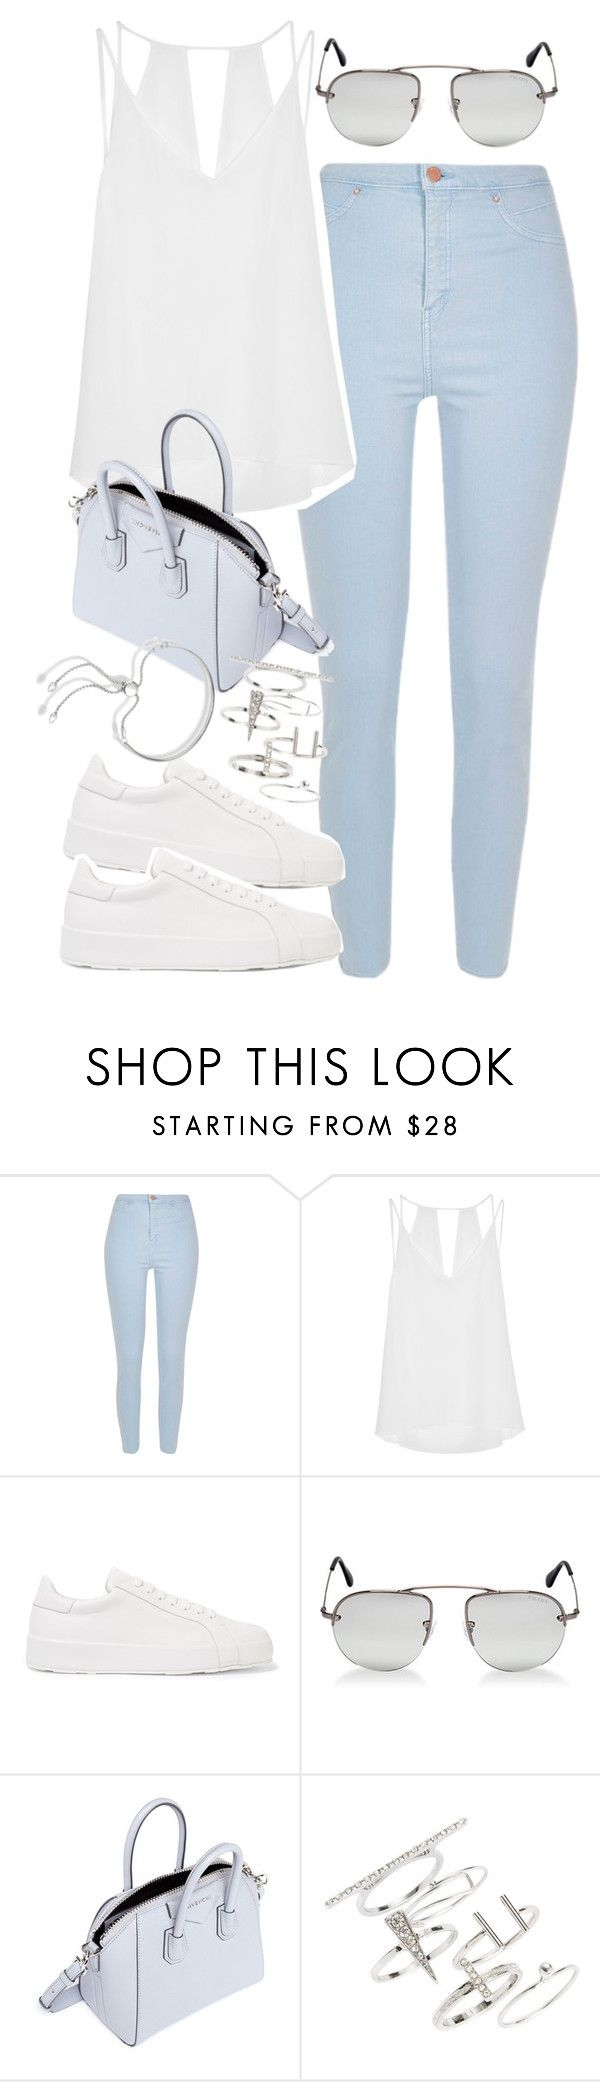 """""""Outfit with light blue jeans"""" by ferned ❤ liked on Polyvore featuring River Island, Sandro, Jil Sander, Prada, Givenchy, Topshop and Monica Vinader"""